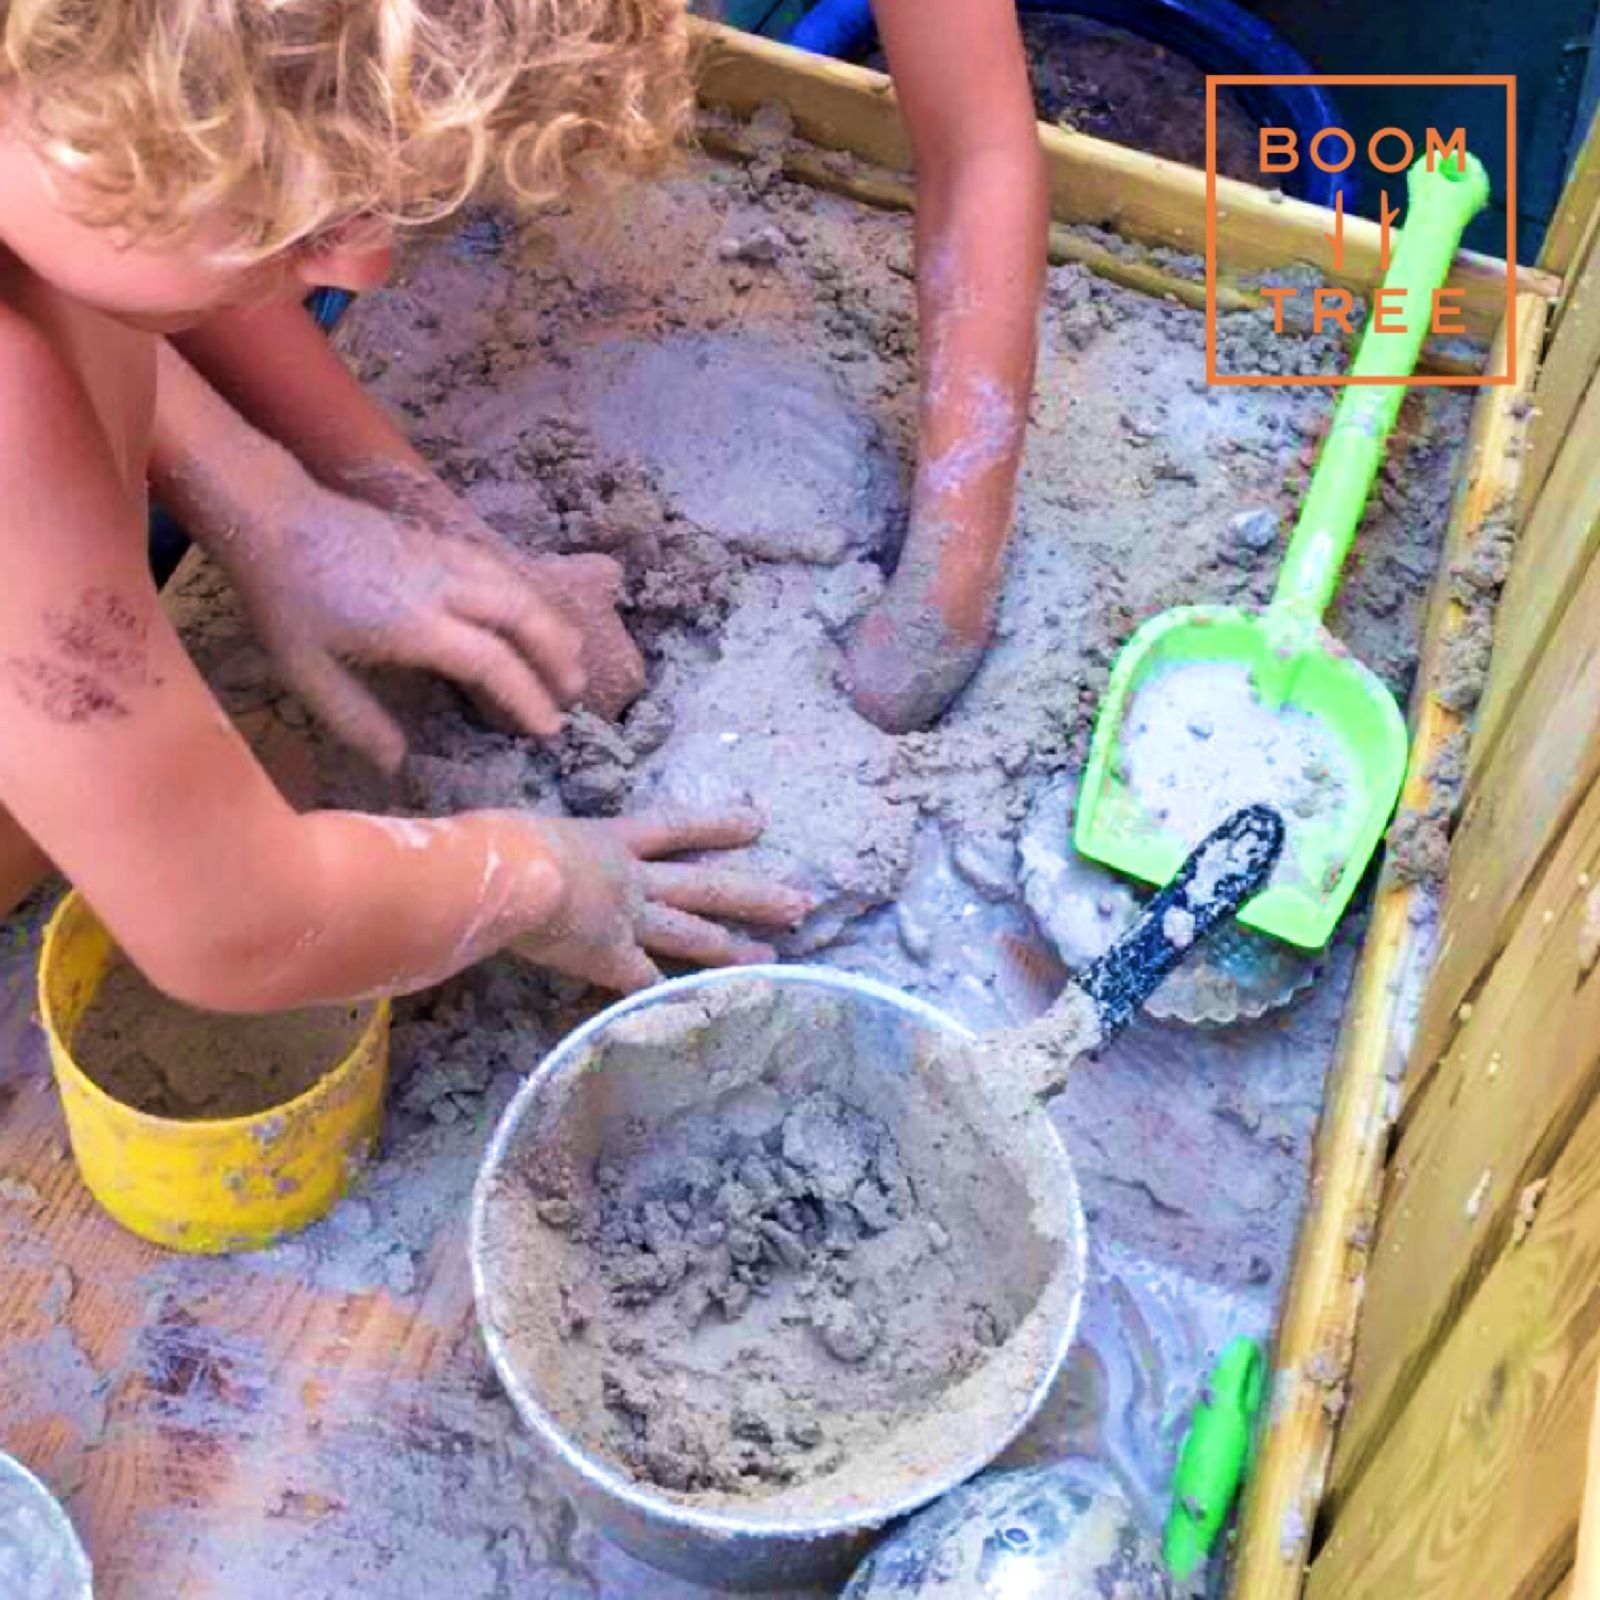 magical mud kitchen BoomTree Adventure Playgrounds